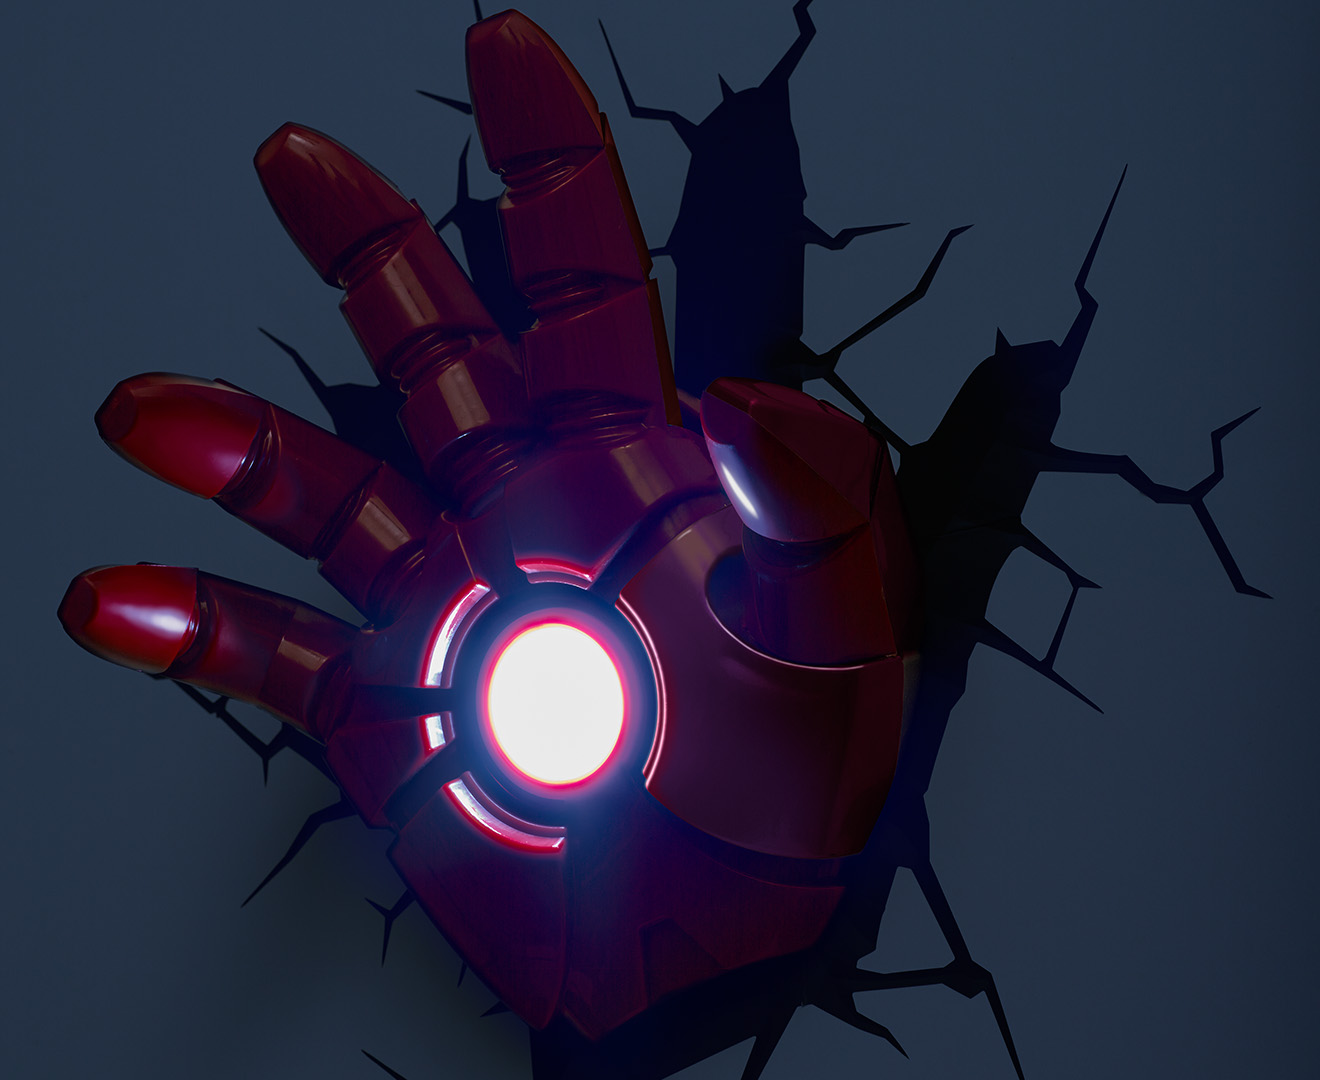 3D Marvel Iron Man Hand Wall Light - Red eBay